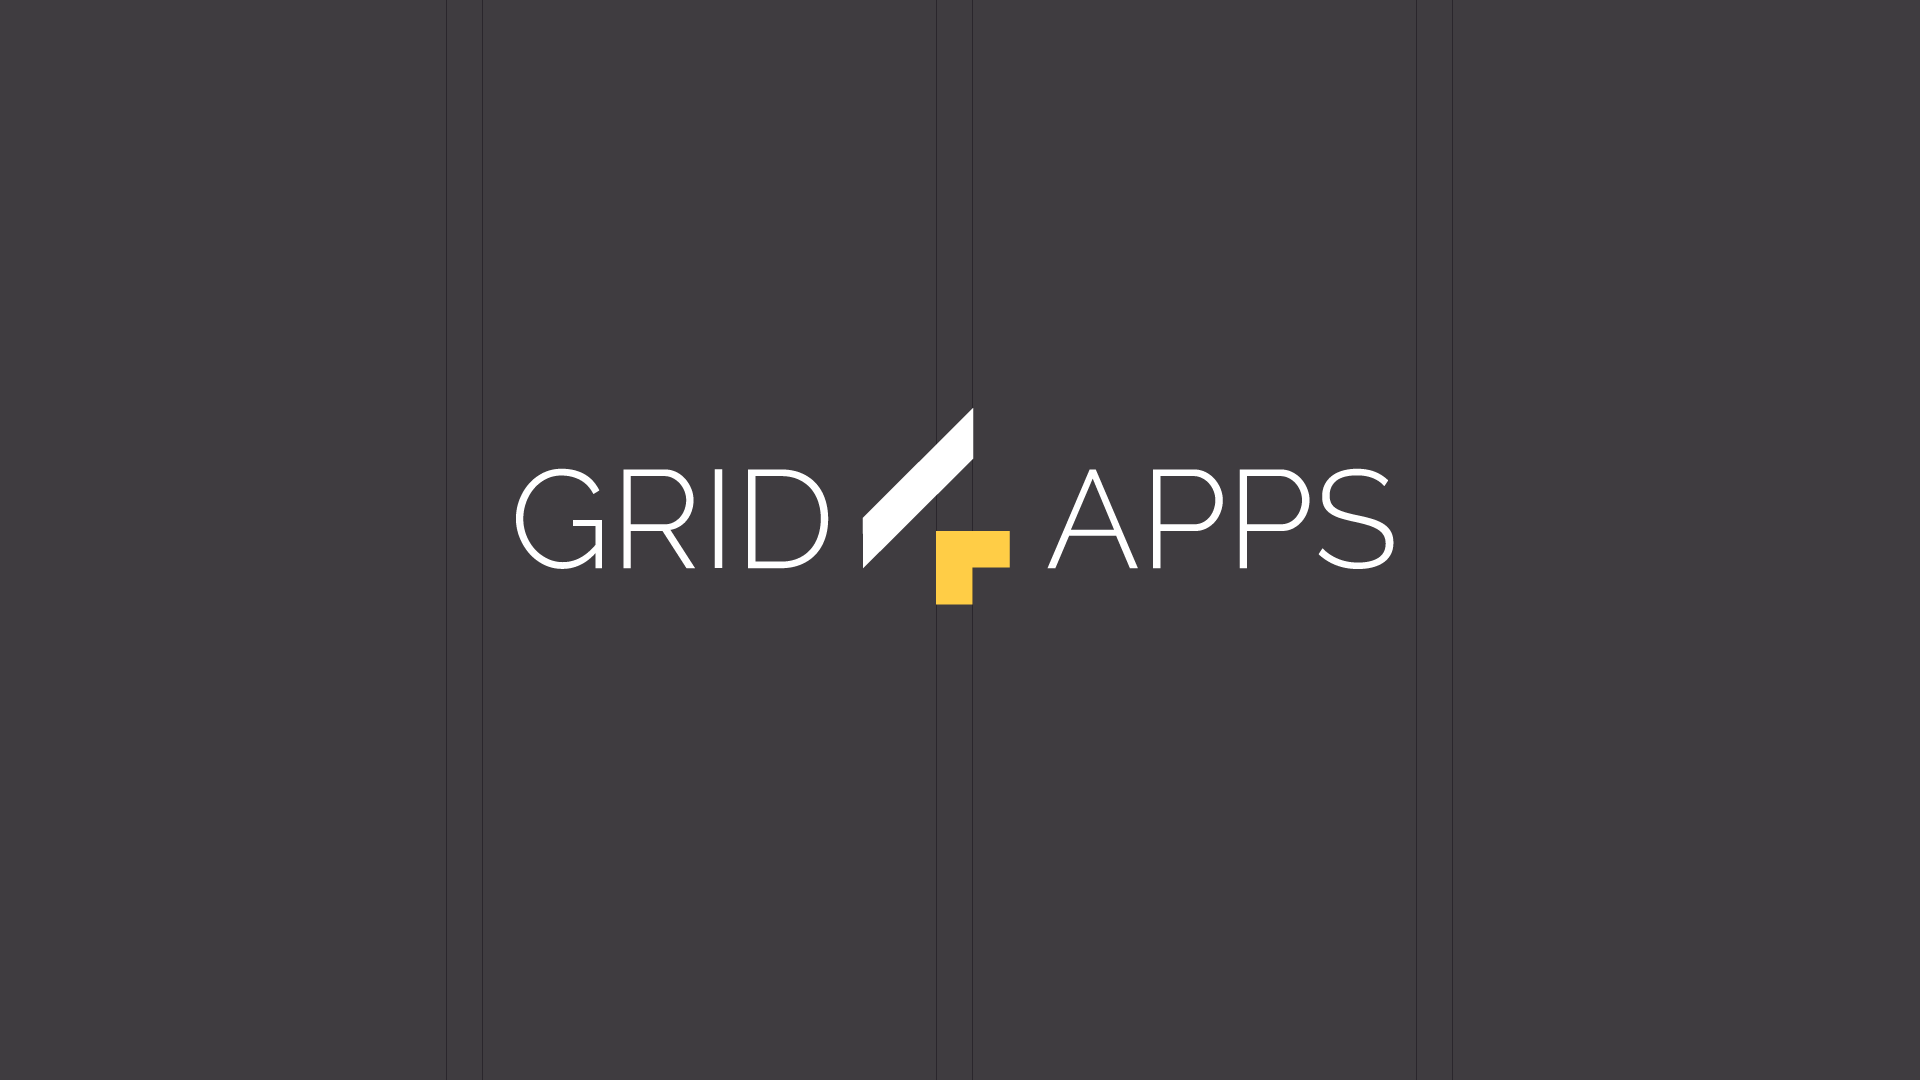 grid4apps